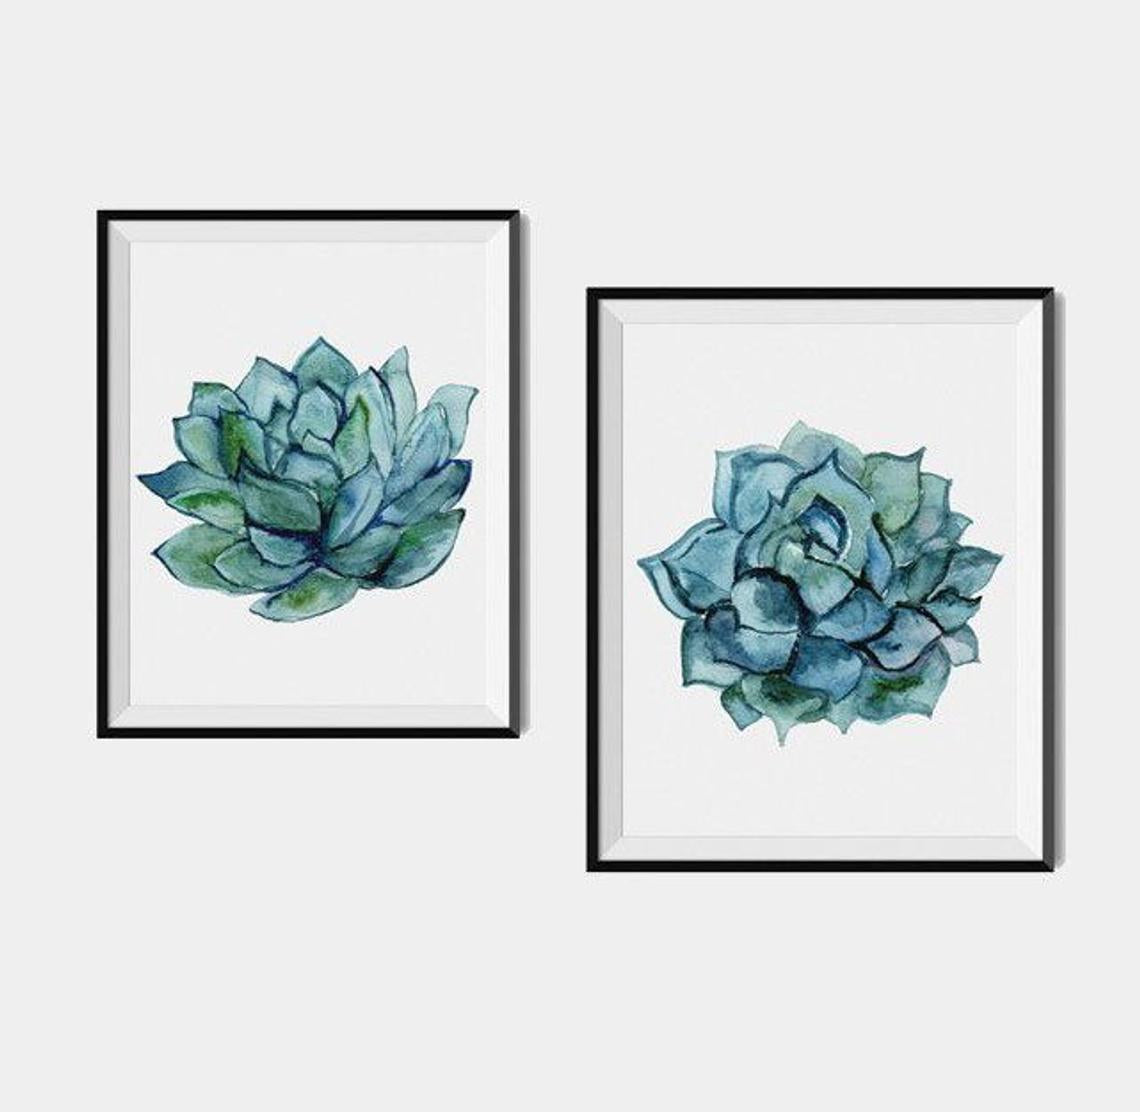 Succulent Flower Wall Art, Set of 2 Printed Wall Arts